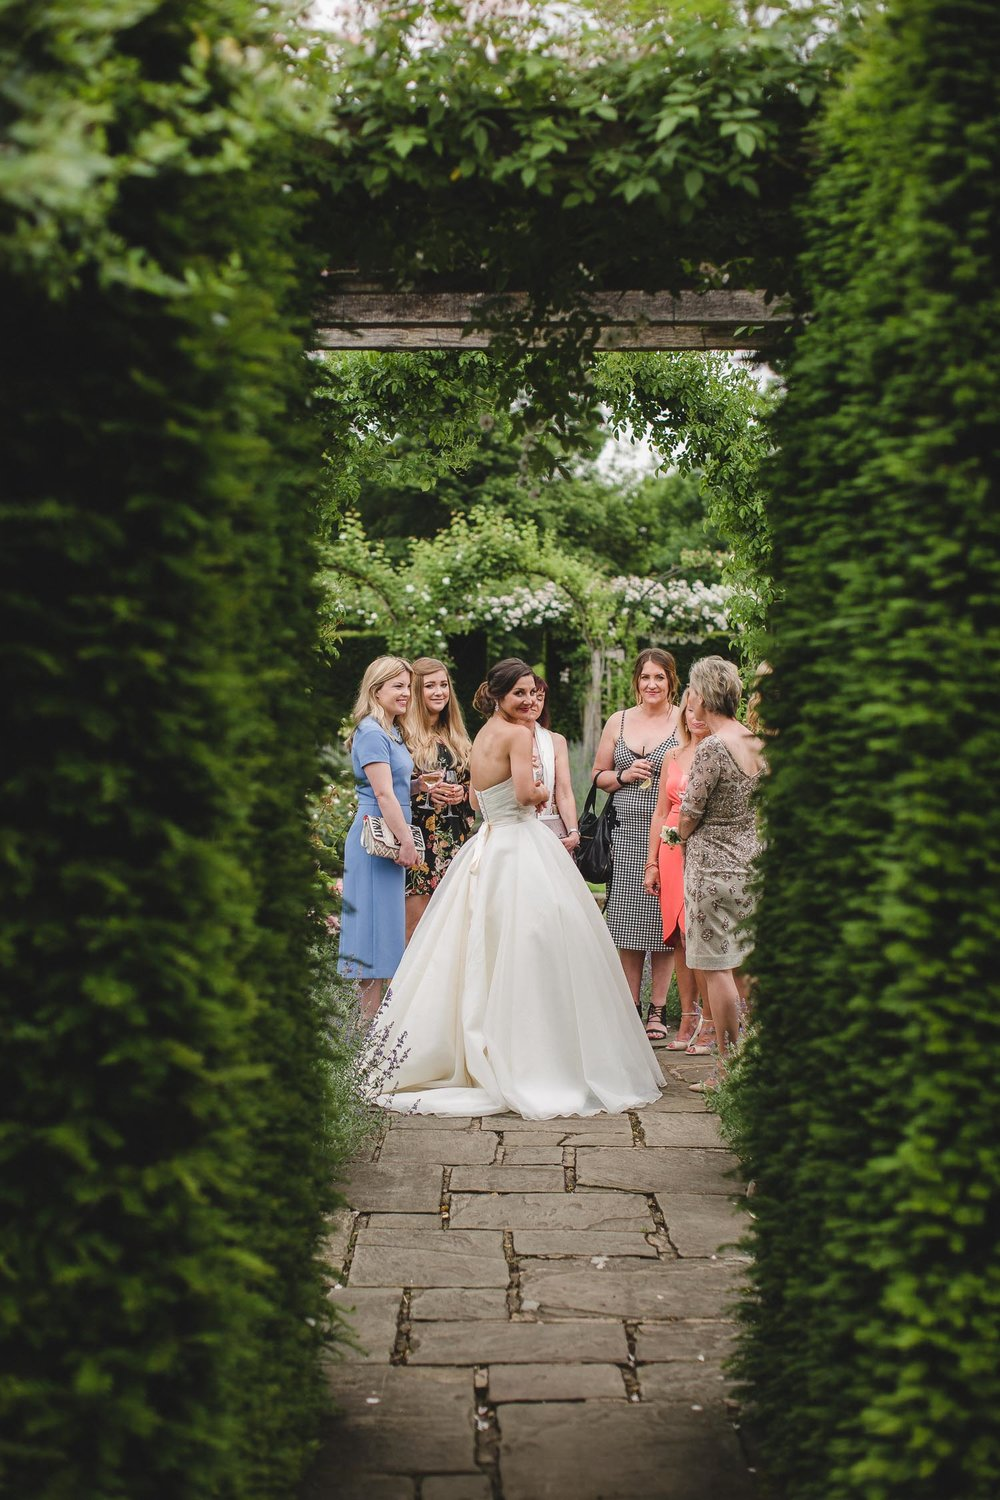 Helen Dom Great Fosters Wedding Egham Kit Myers Photography Photographer160.jpg